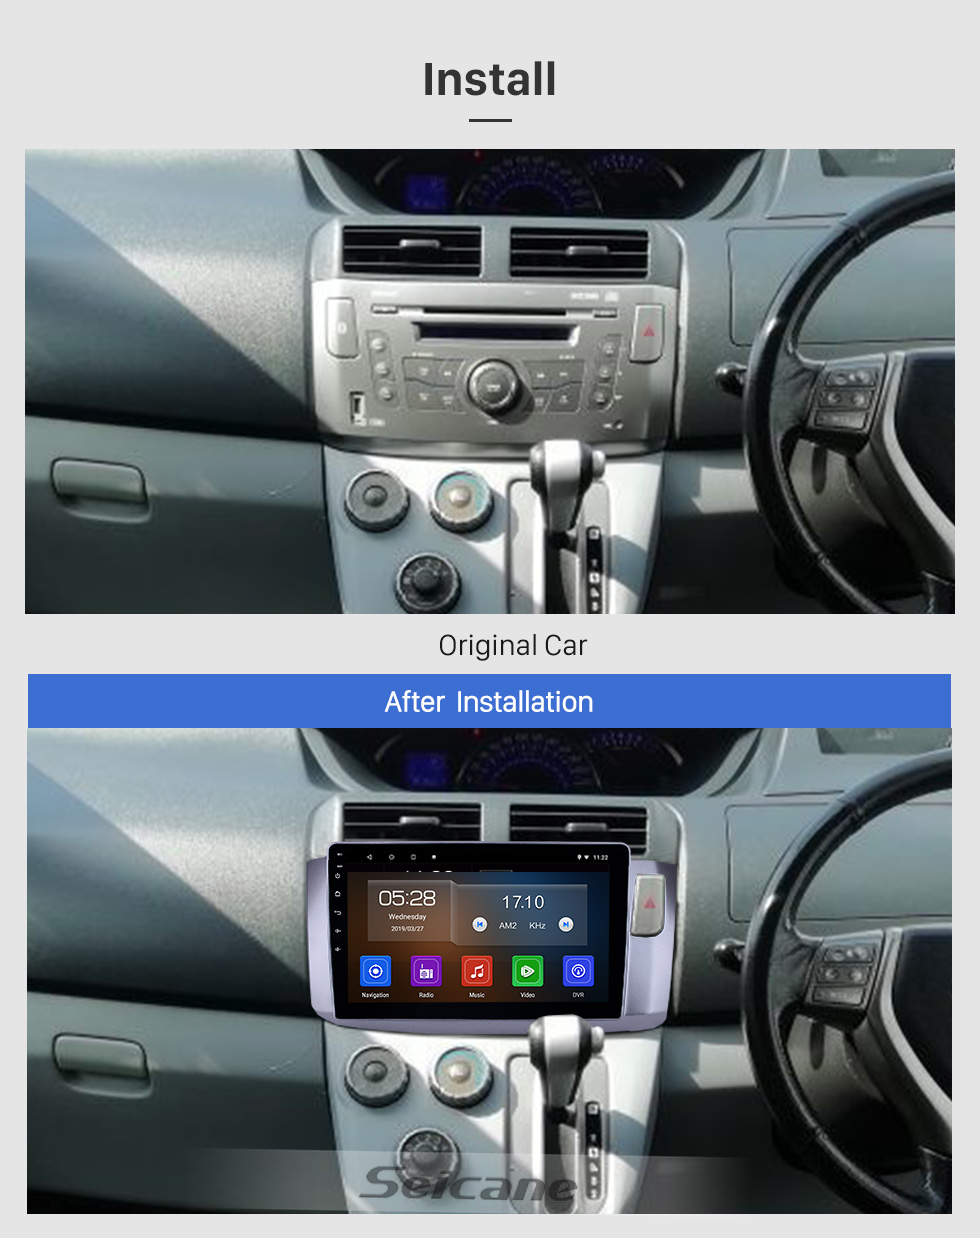 Seicane 10.1 inch 2010 Perodua Alza Android 9.0 GPS Navigation Radio Bluetooth HD Touchscreen AUX USB WIFI Carplay support OBD2 DAB+ 1080P Video